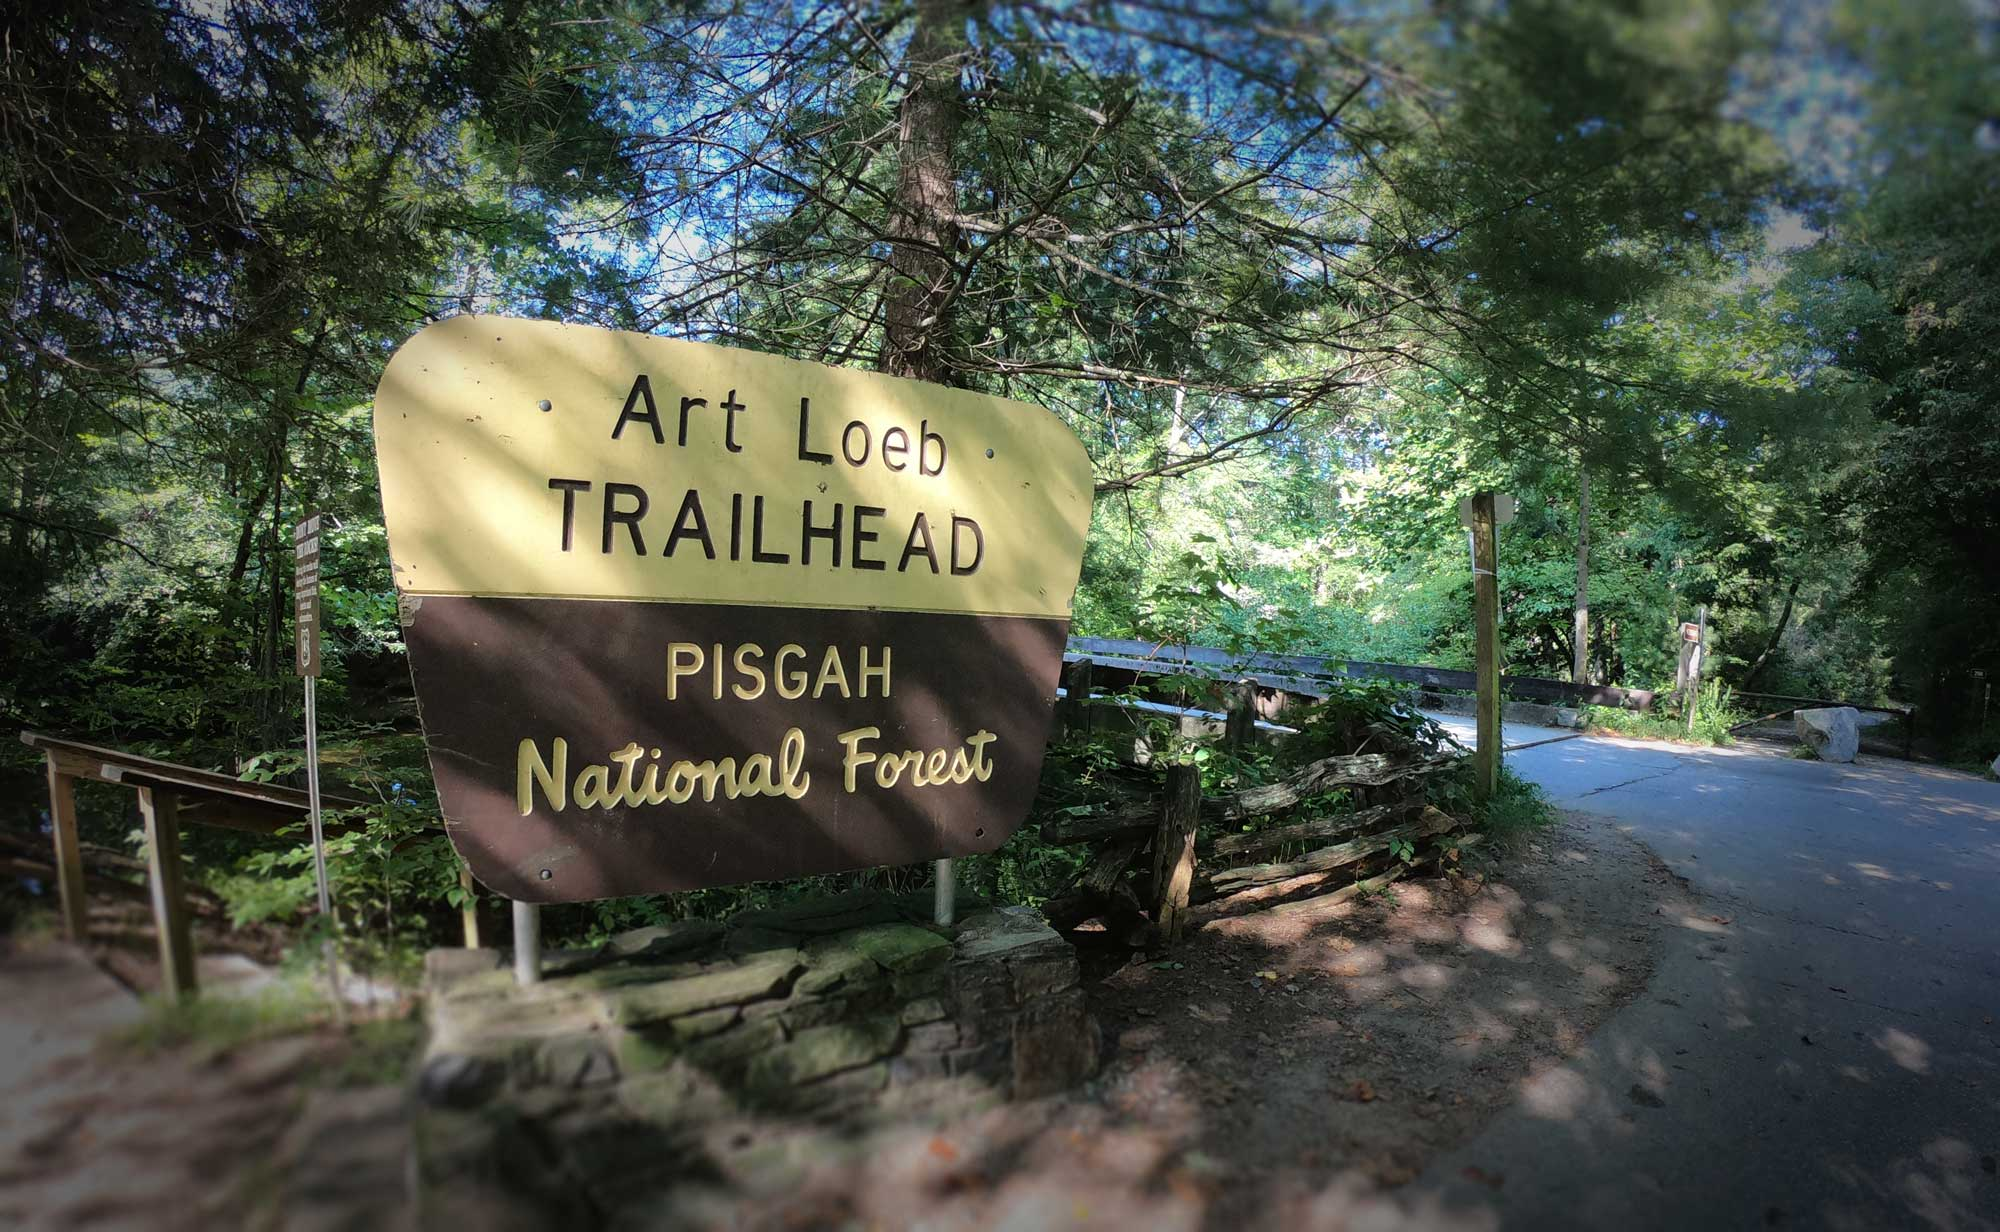 Art Loeb Trailhead signage in Pisgah National Forest, Davidson River Campground, North Carolina